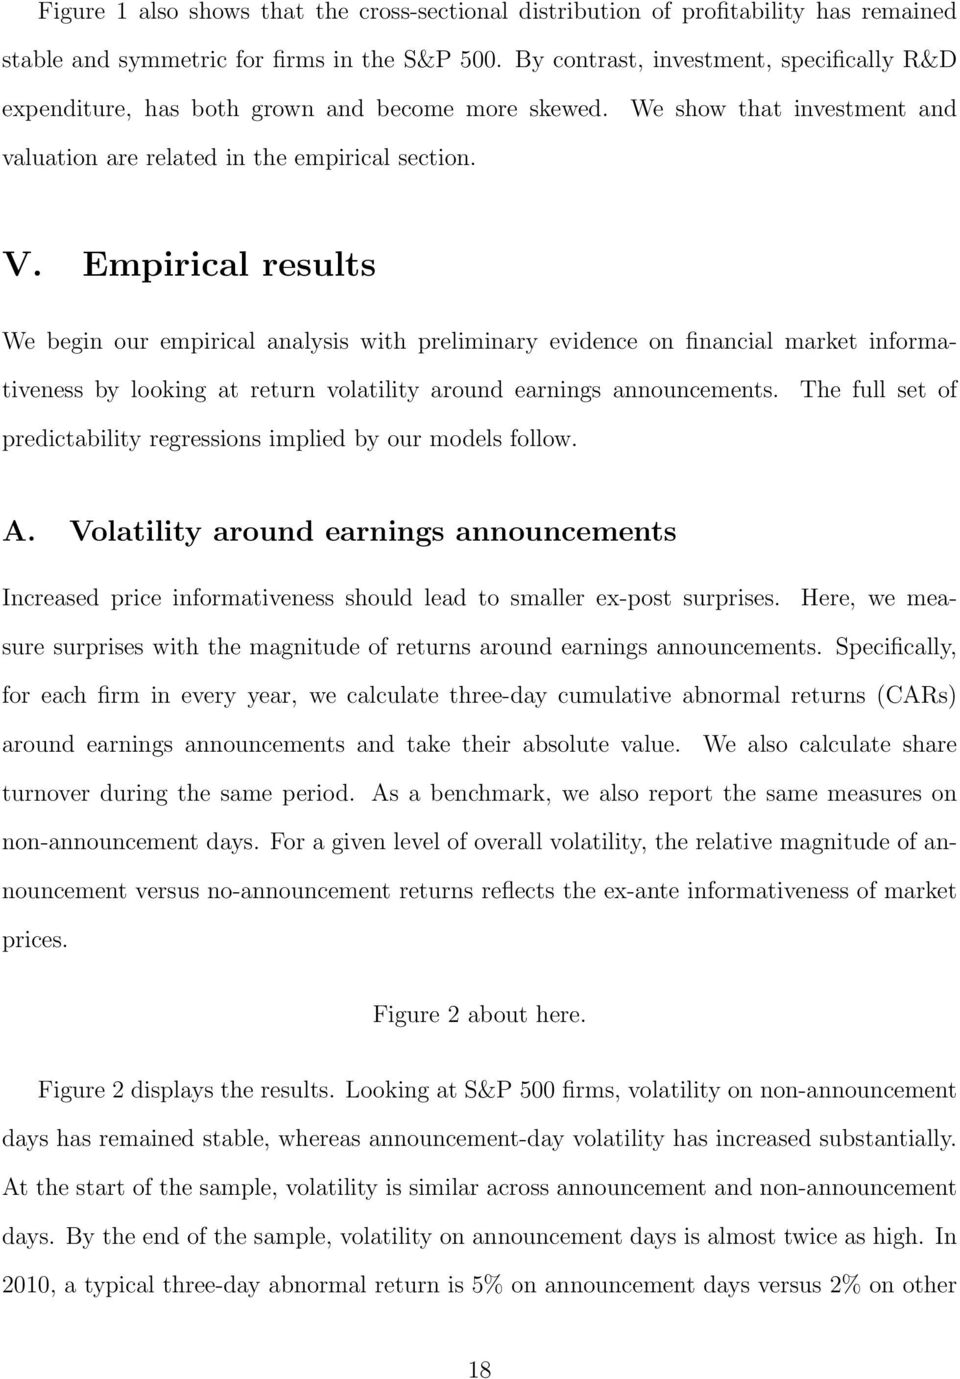 Empirical results We begin our empirical analysis with preliminary evidence on financial market informativeness by looking at return volatility around earnings announcements.